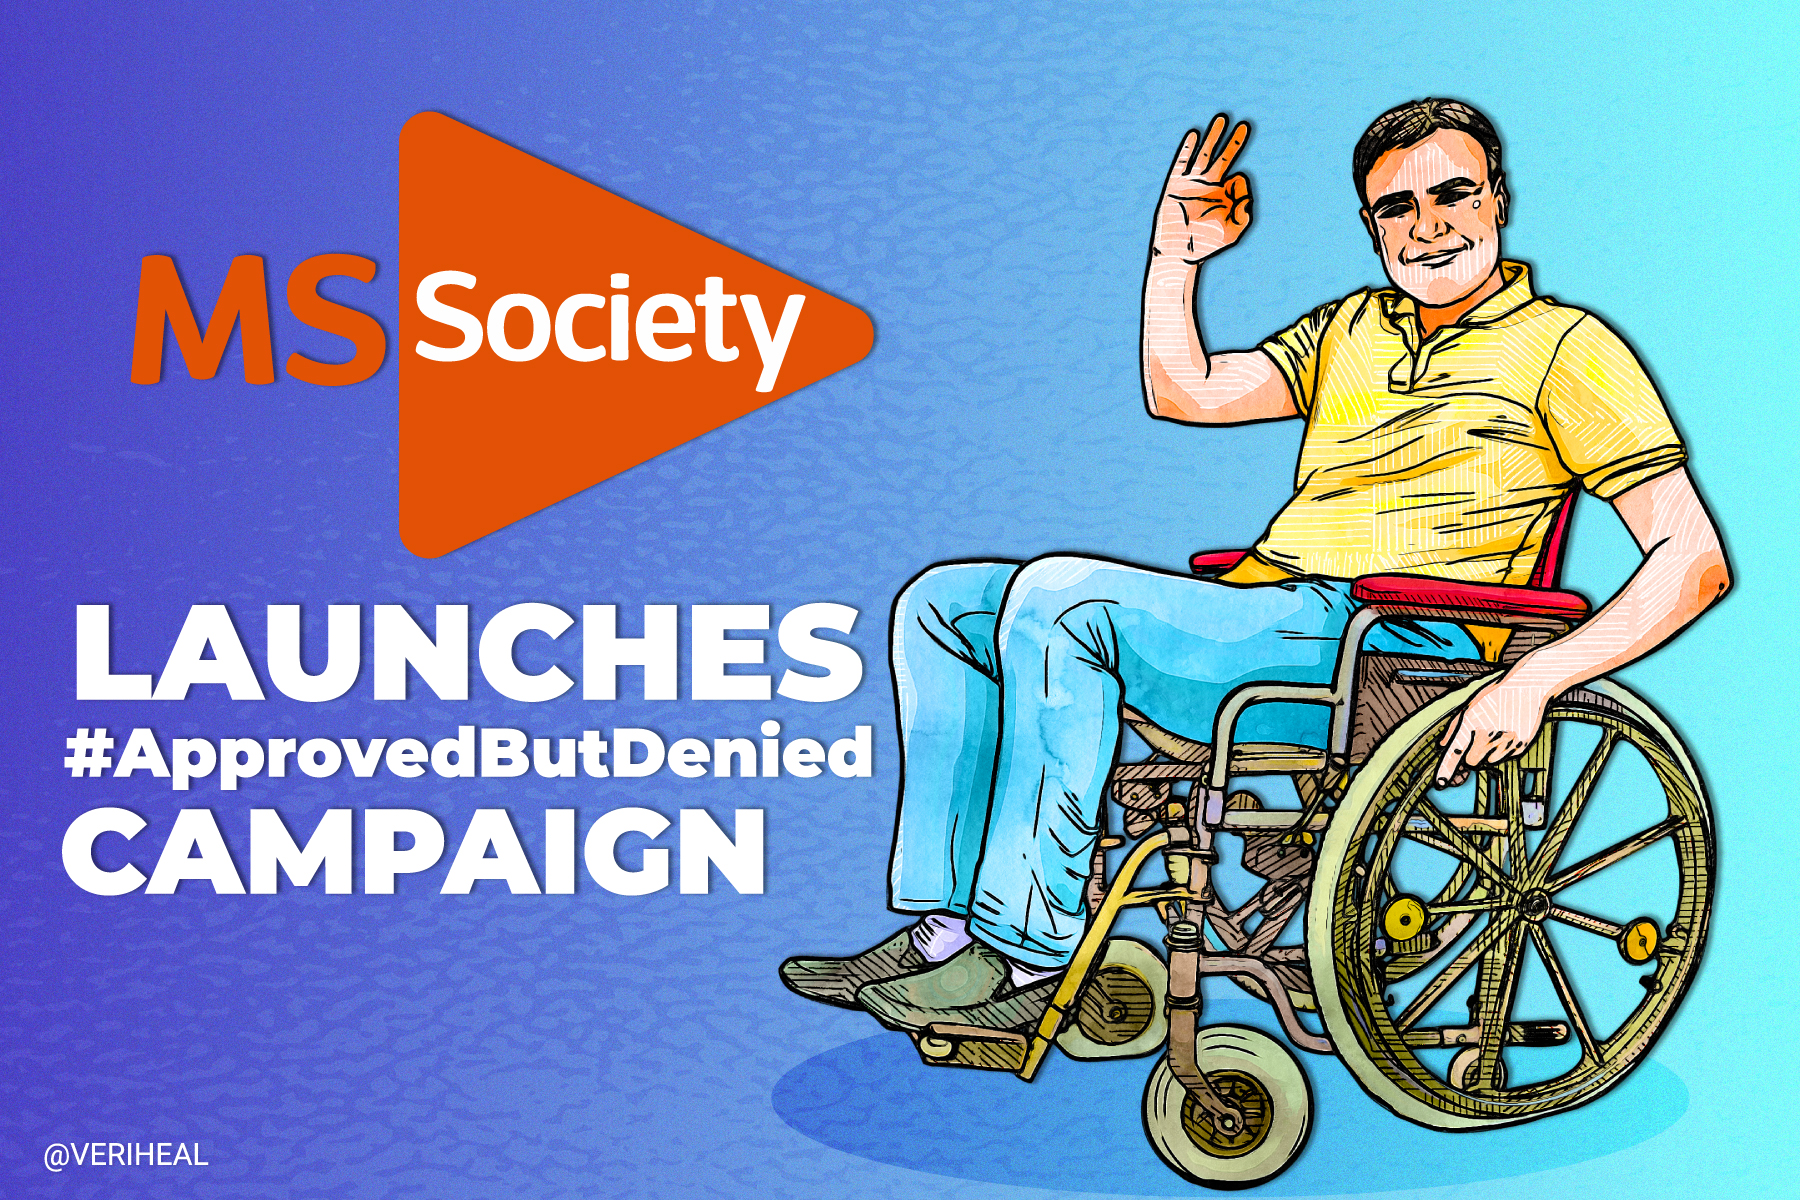 UK's MS Society Launches #ApprovedButDenied Campaign